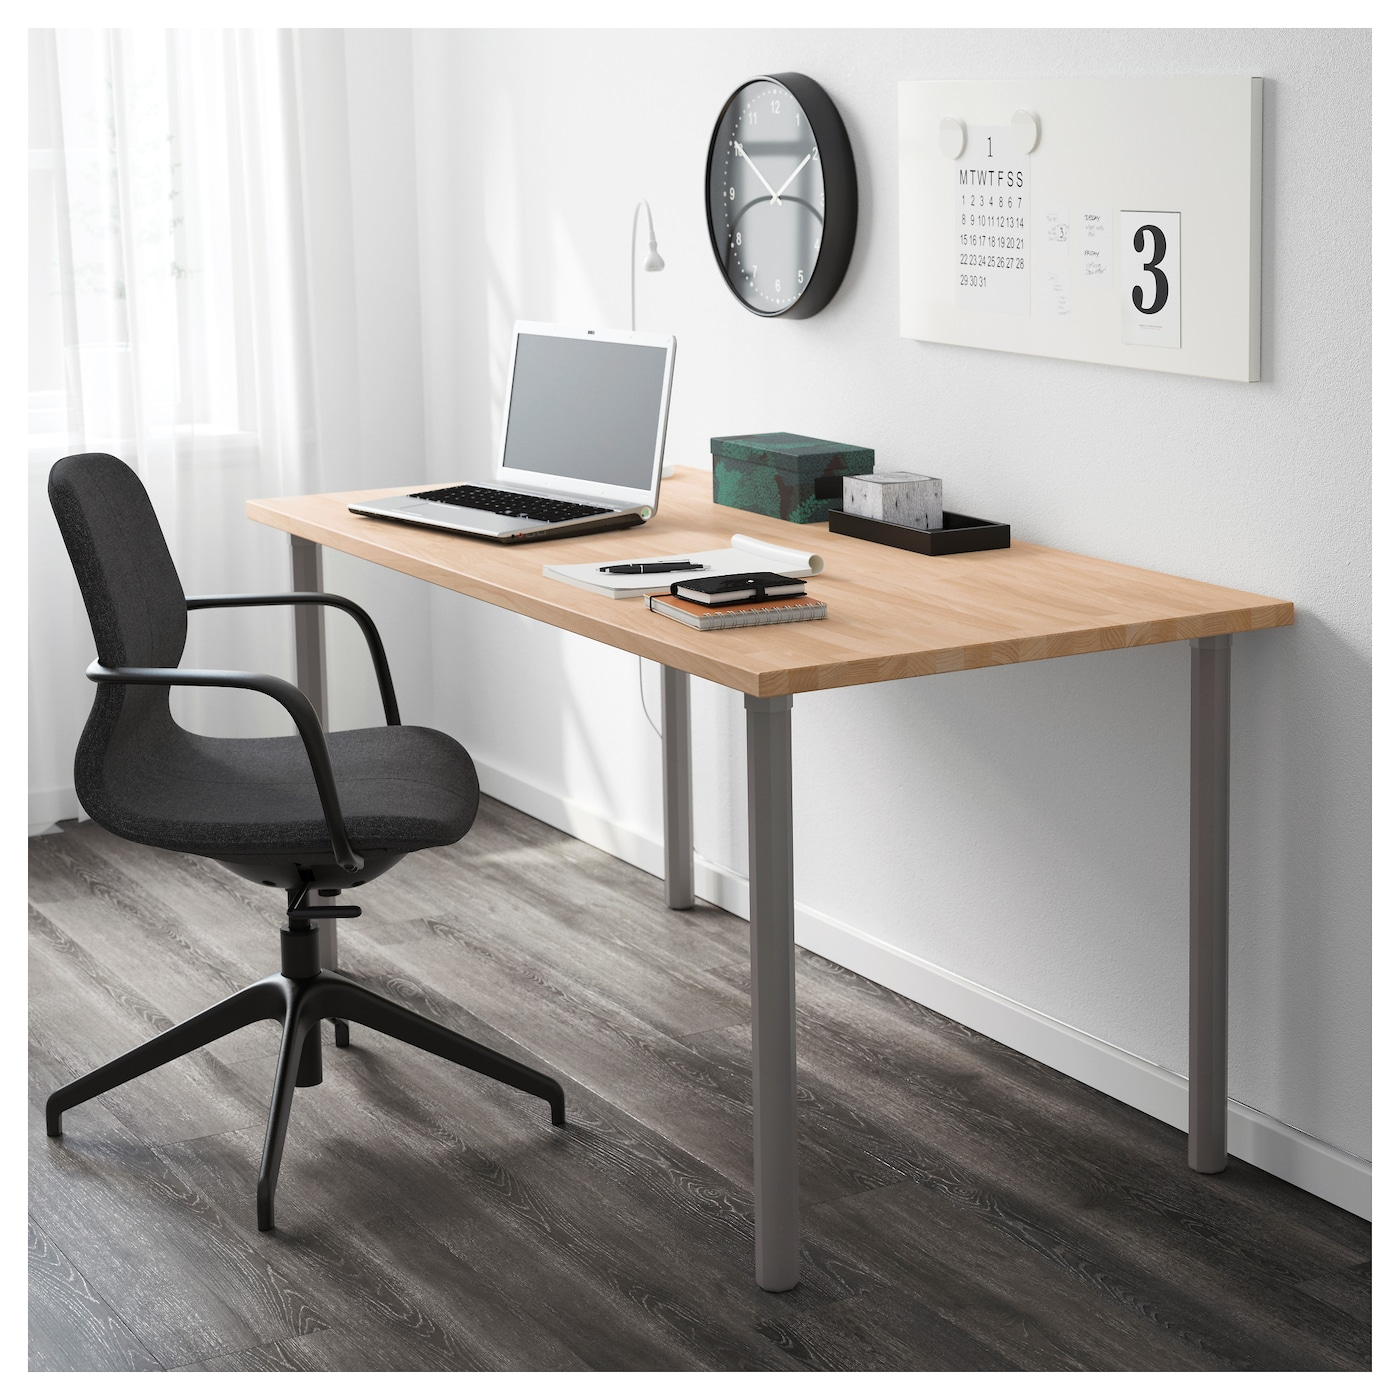 IKEA GERTON table